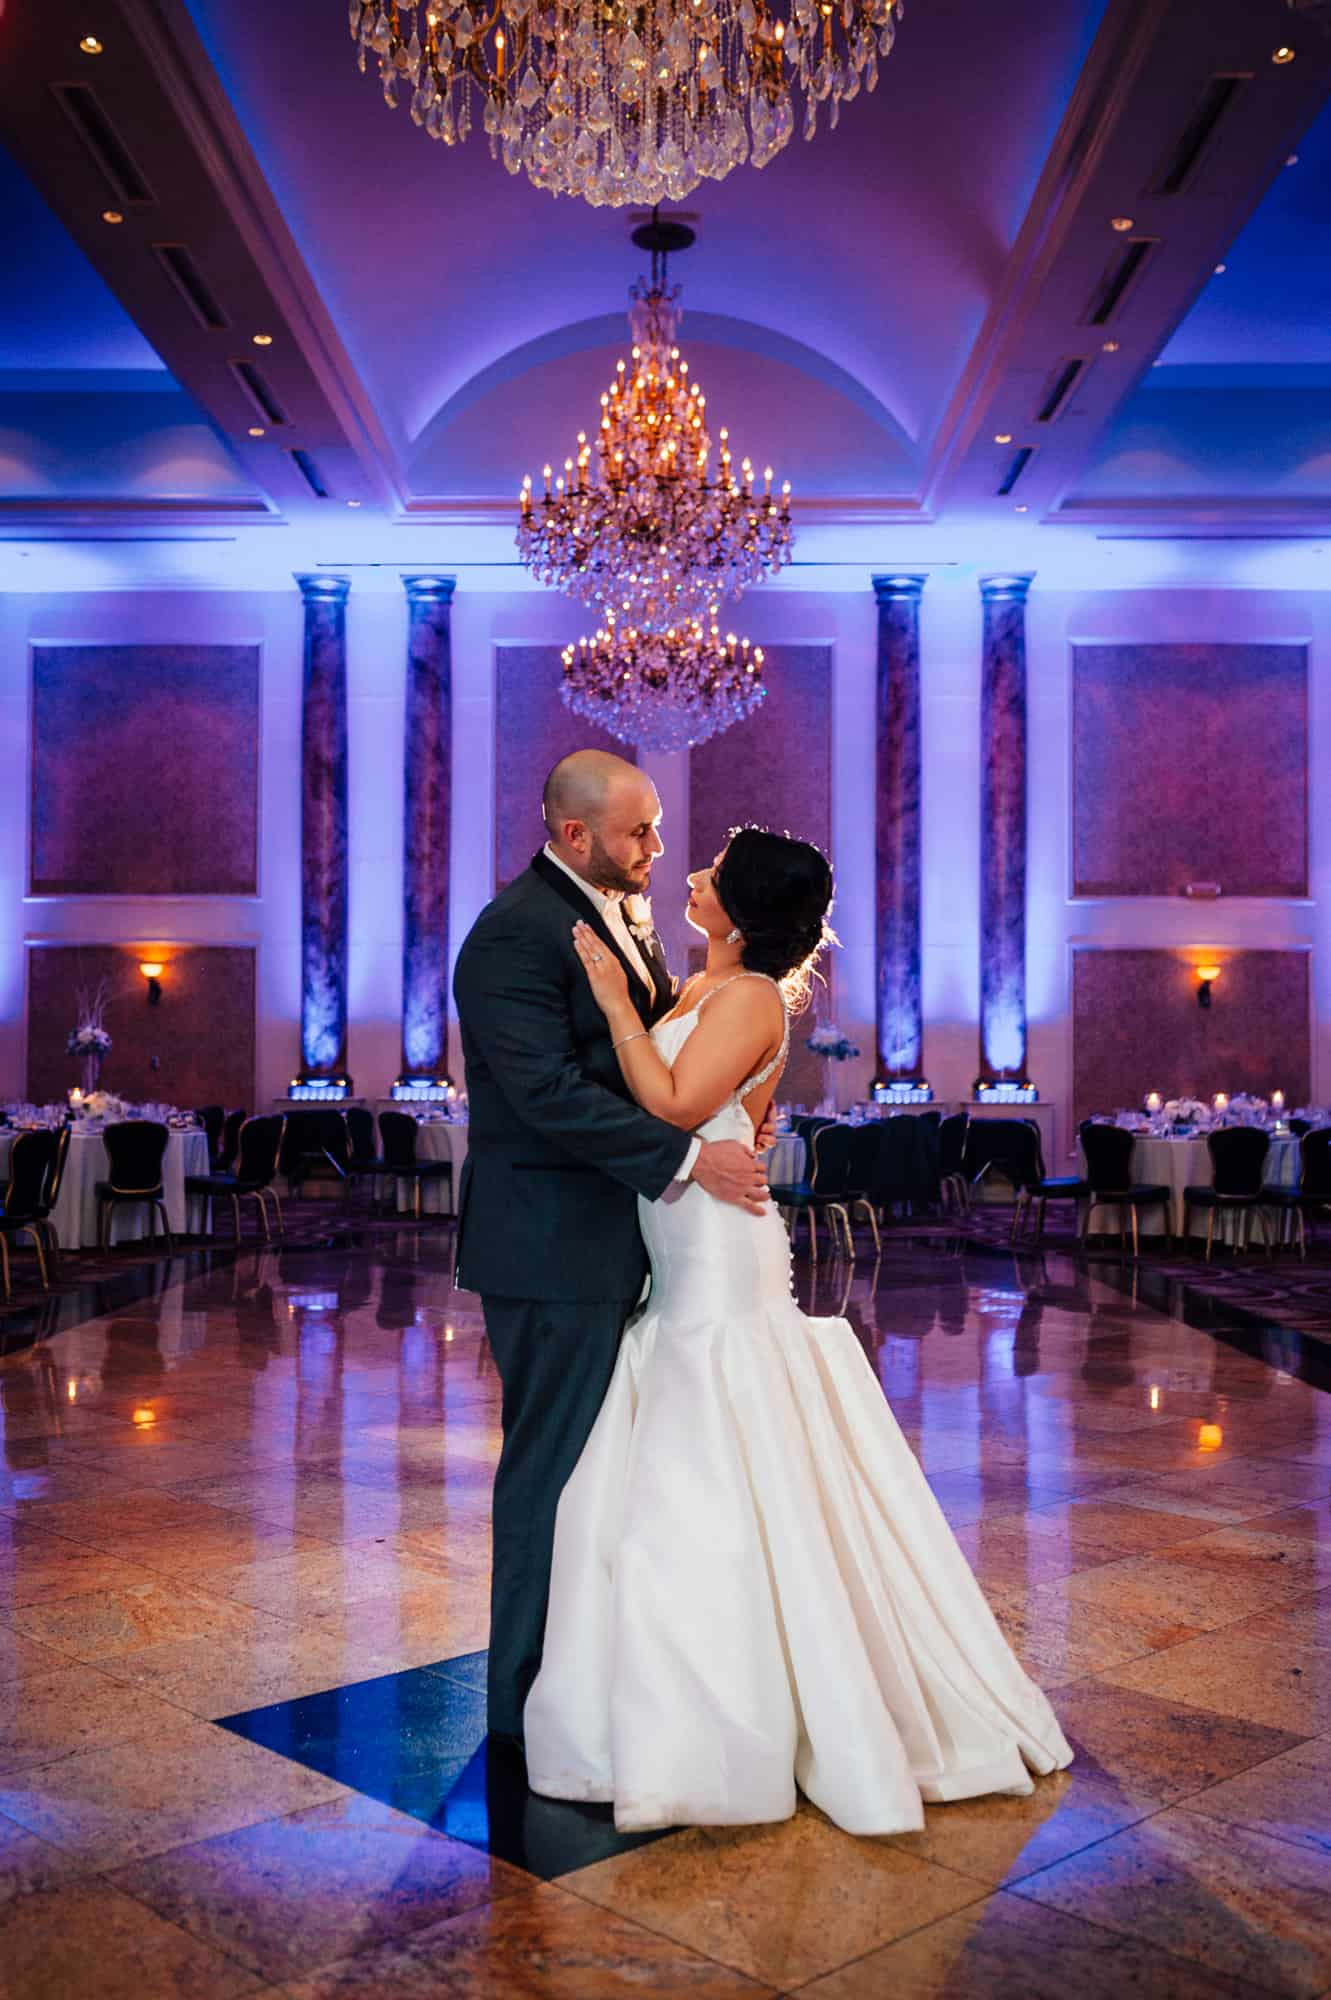 Romantic image of bride and groom